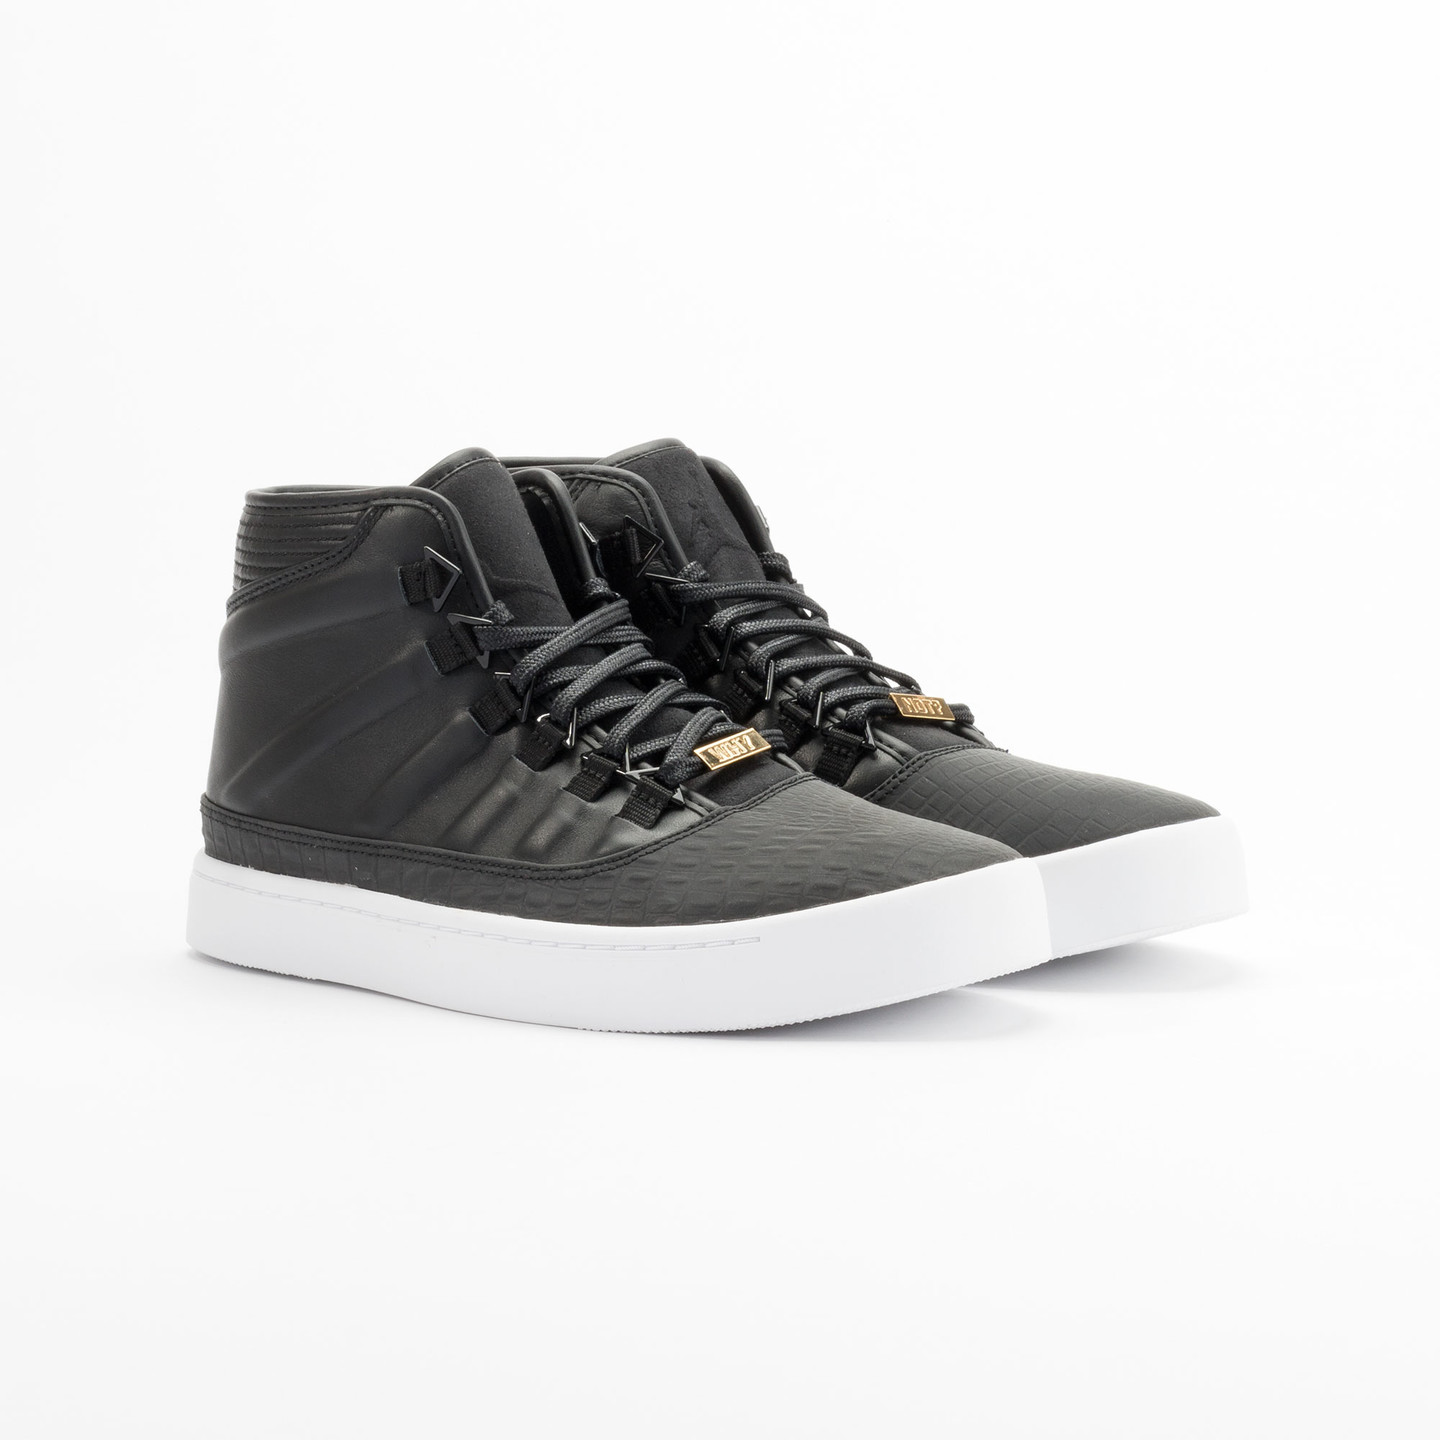 Jordan Westbrook 0 Black Metallic / Gold - White 768934-001-42.5